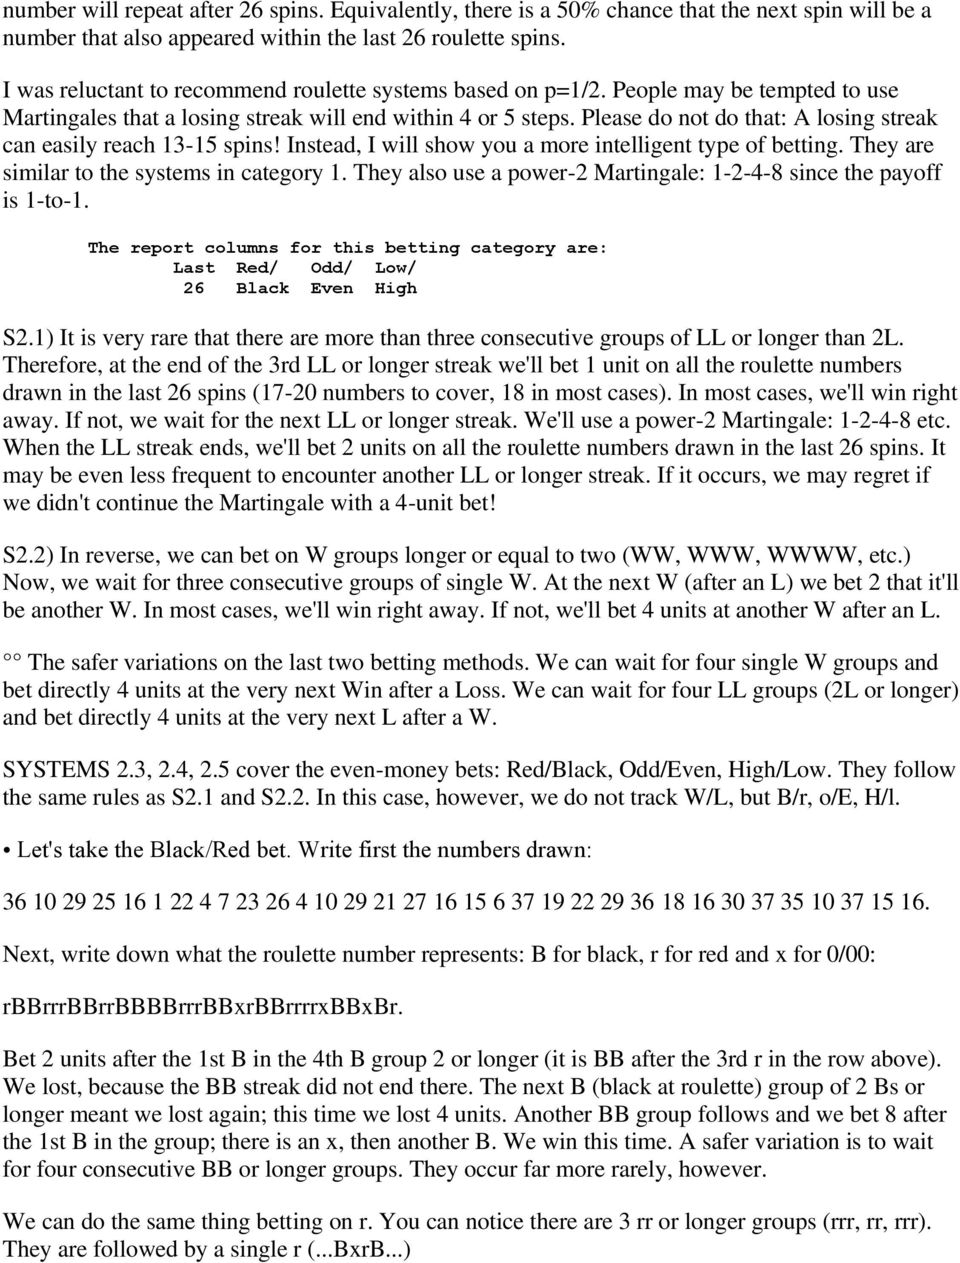 Sp commands 1-3 2-4 betting system how to read odds ratio betting online